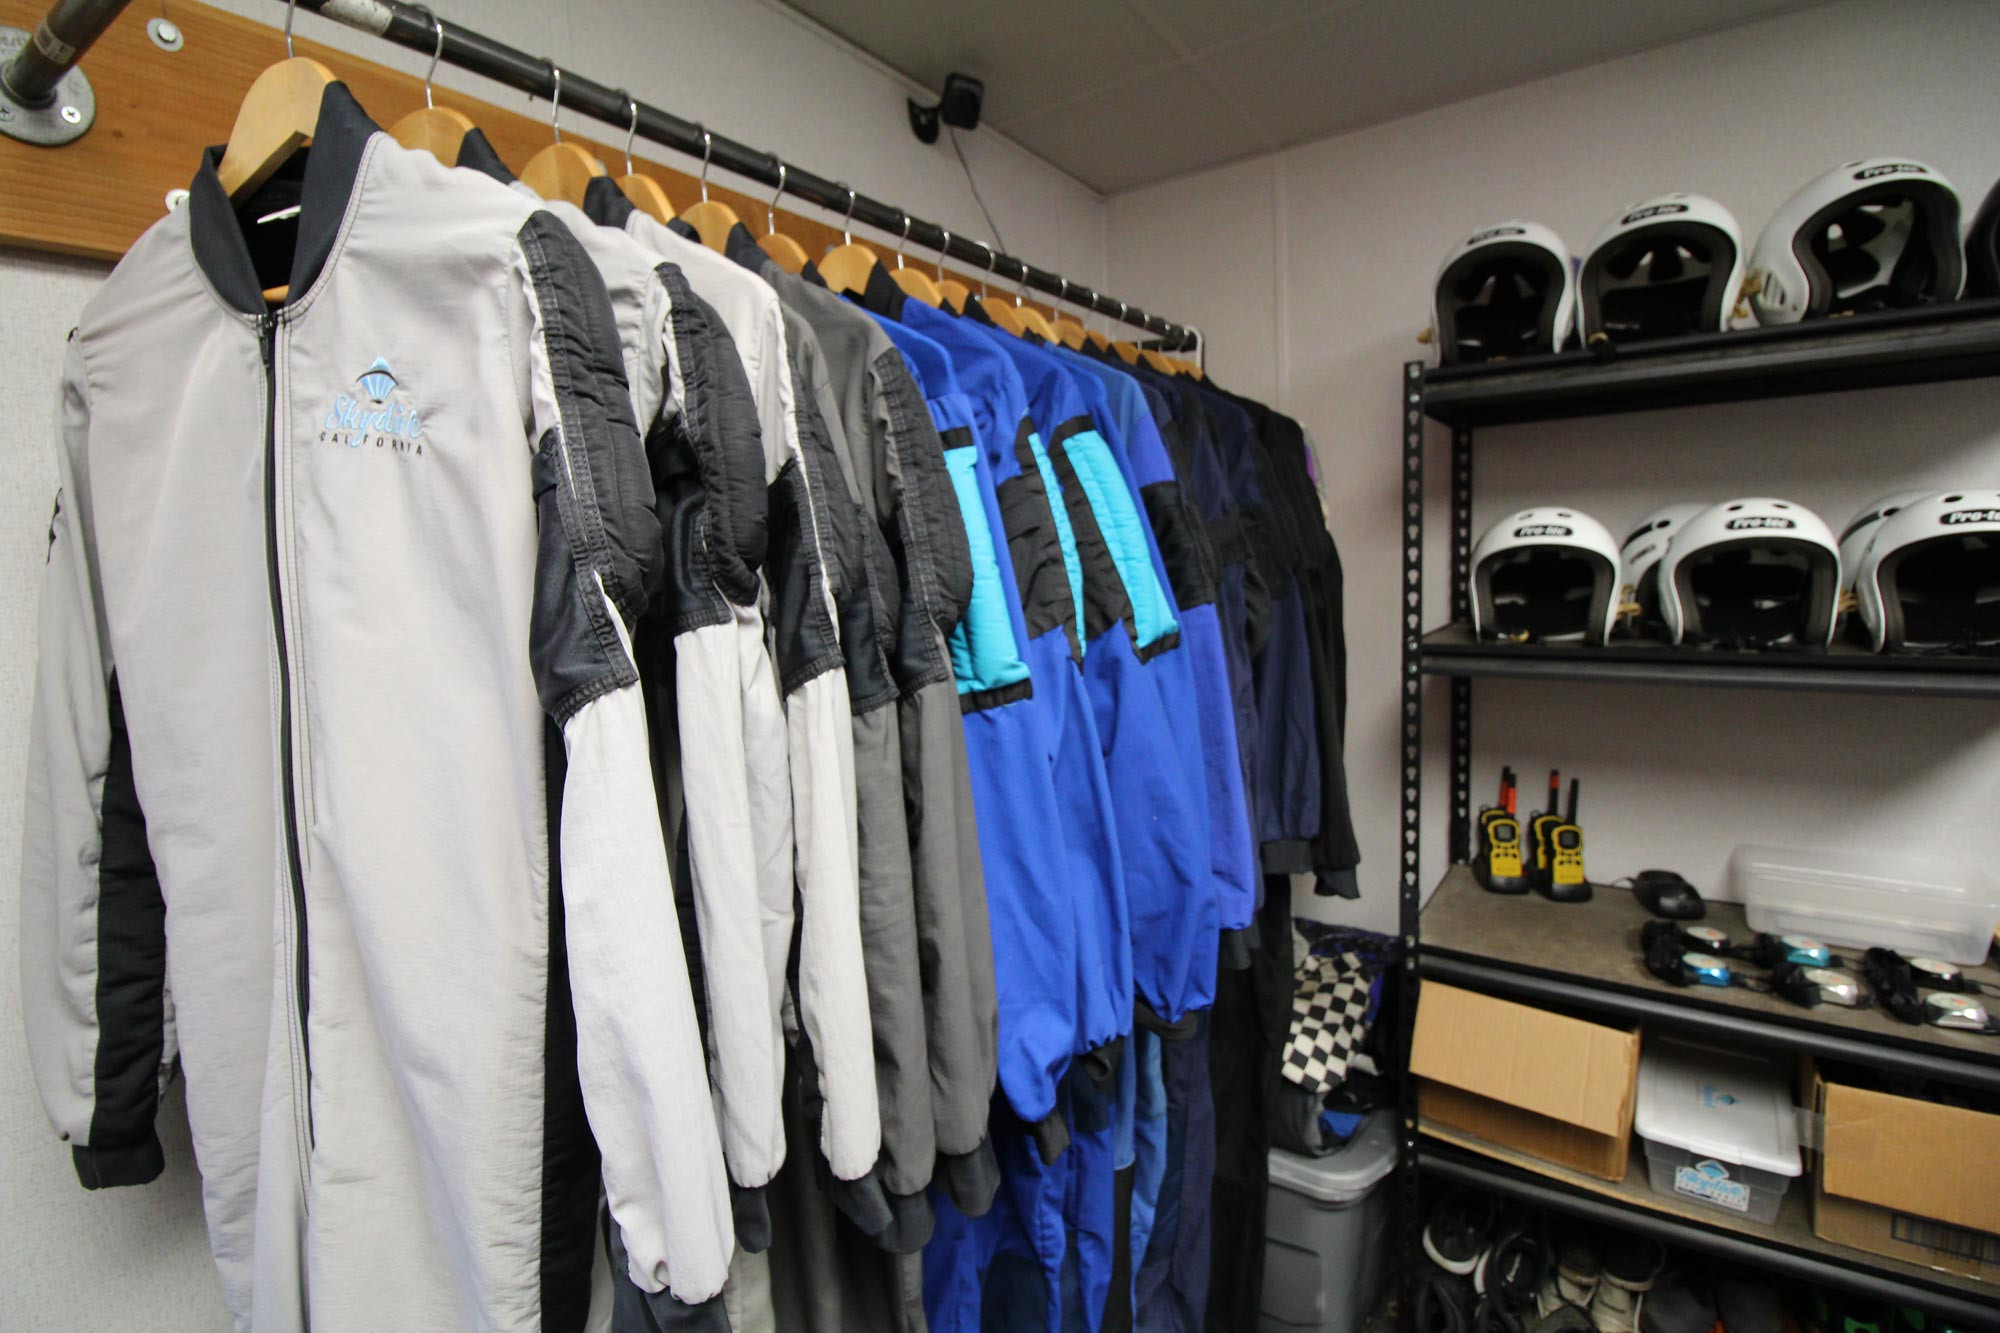 Skydive California jumping gear including suits and helmets.